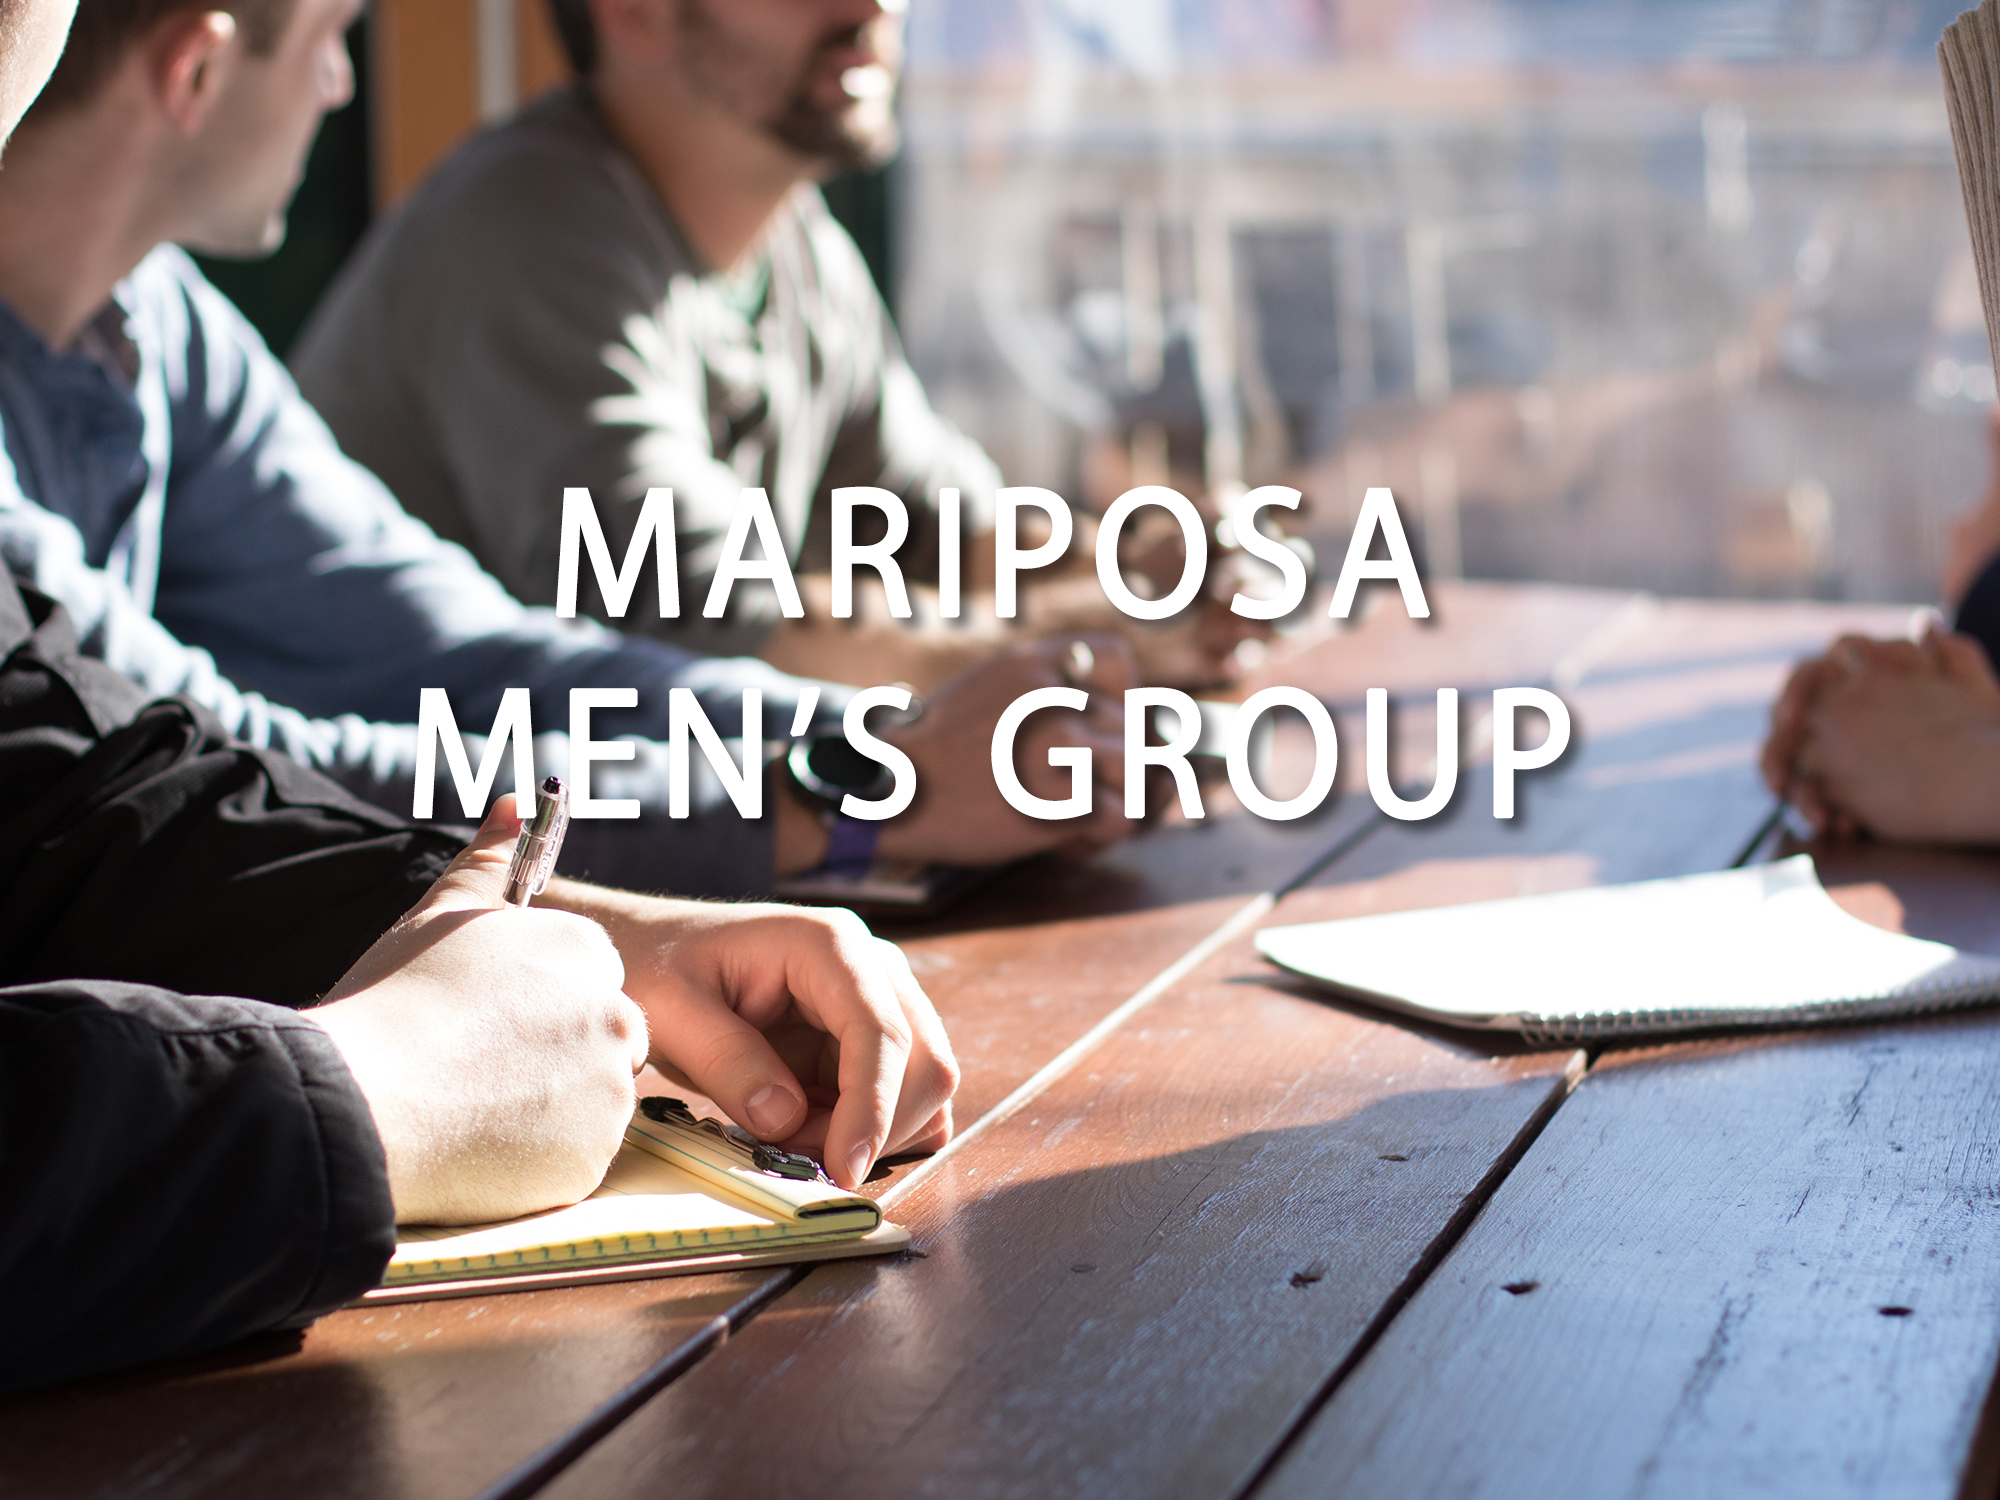 Bible study for men of all ages in the Mariposa area.